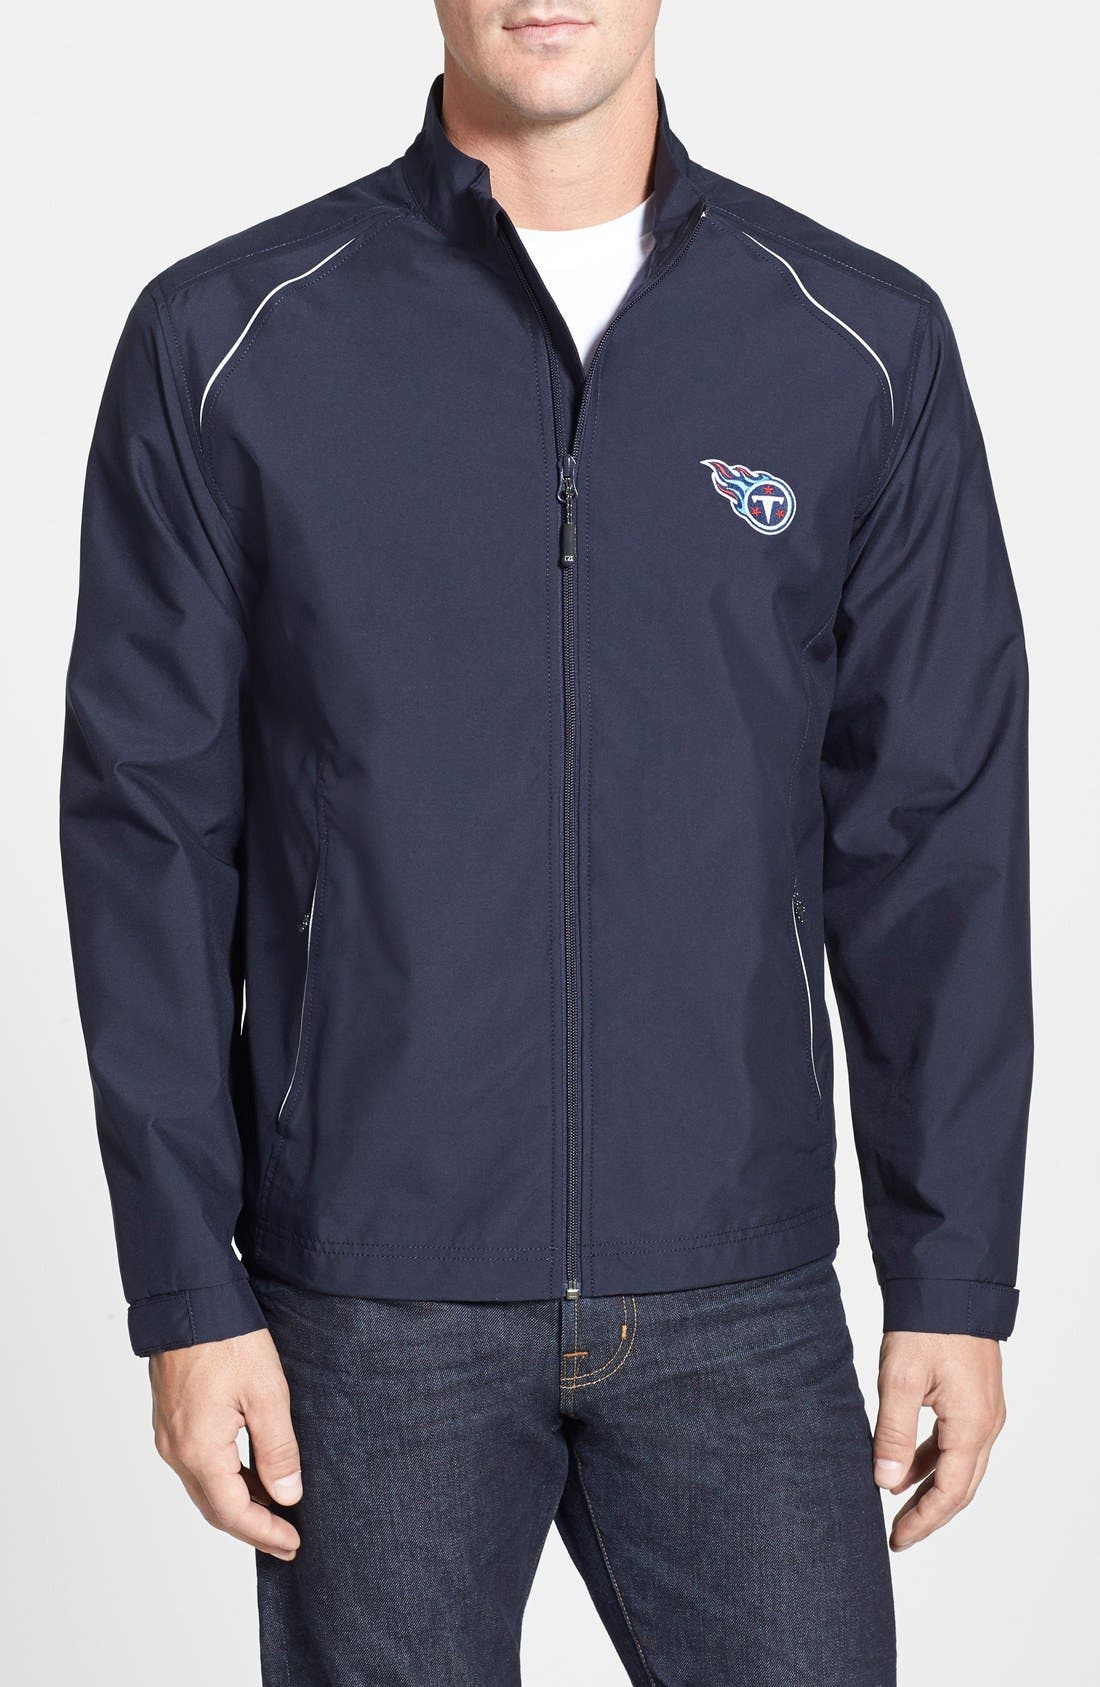 Tennessee Titans - Beacon WeatherTec Wind & Water Resistant Jacket,                         Main,                         color, 420